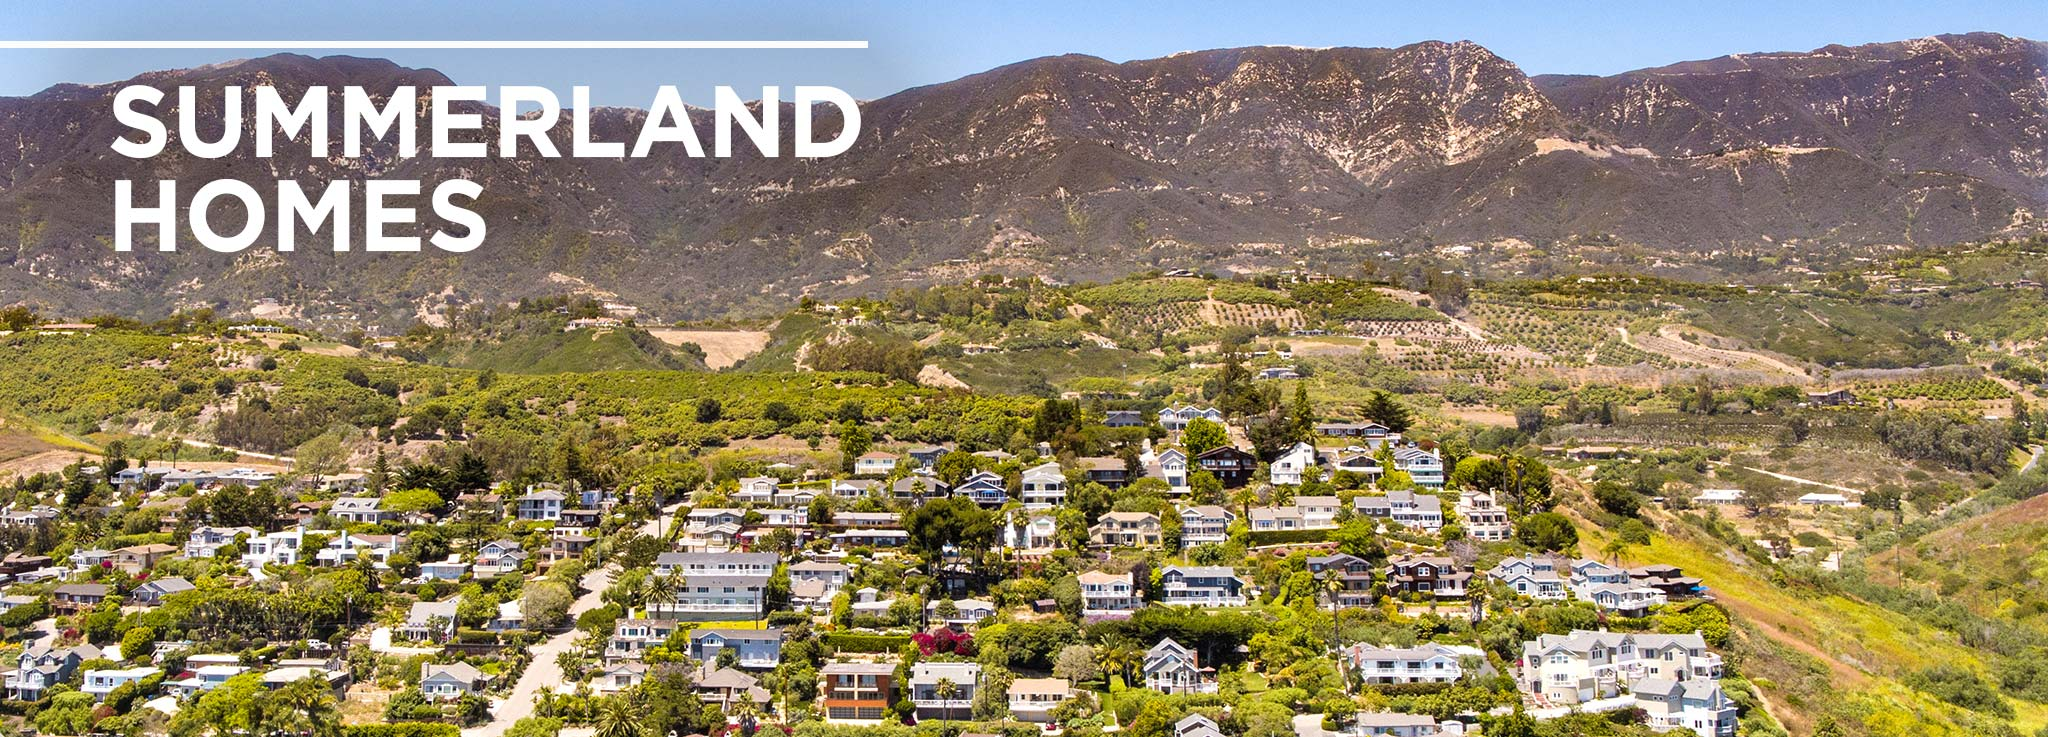 homes for sale in Summerland